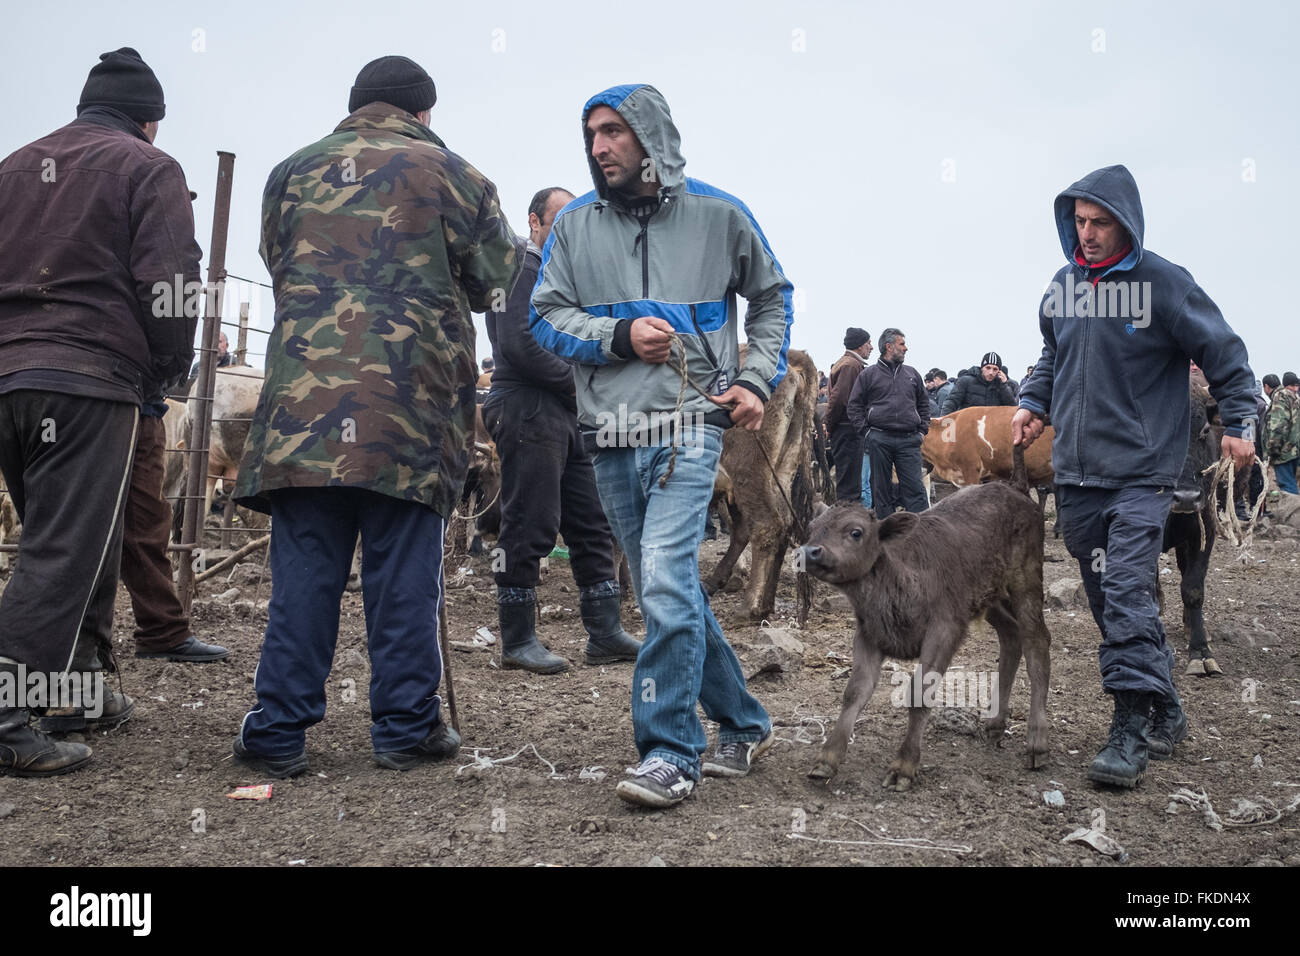 Scene from an open air animal market in Georgia close to the Azerbaijan border. A man drags a calf through a group - Stock Image